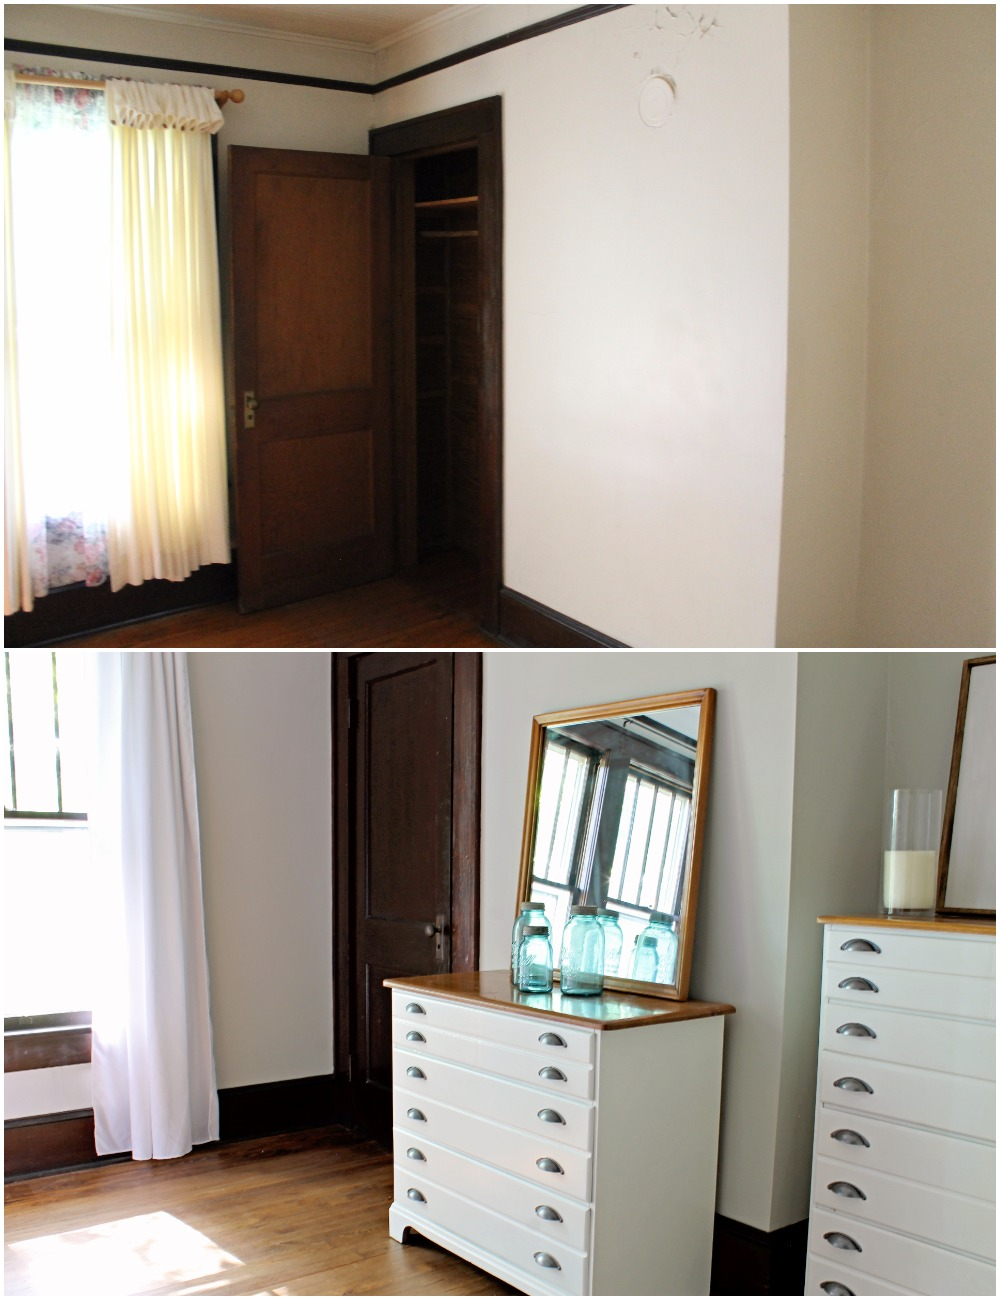 House Flipping Before and Afters - DIY BUDGET BEDROOM IDEAS (2).jpg